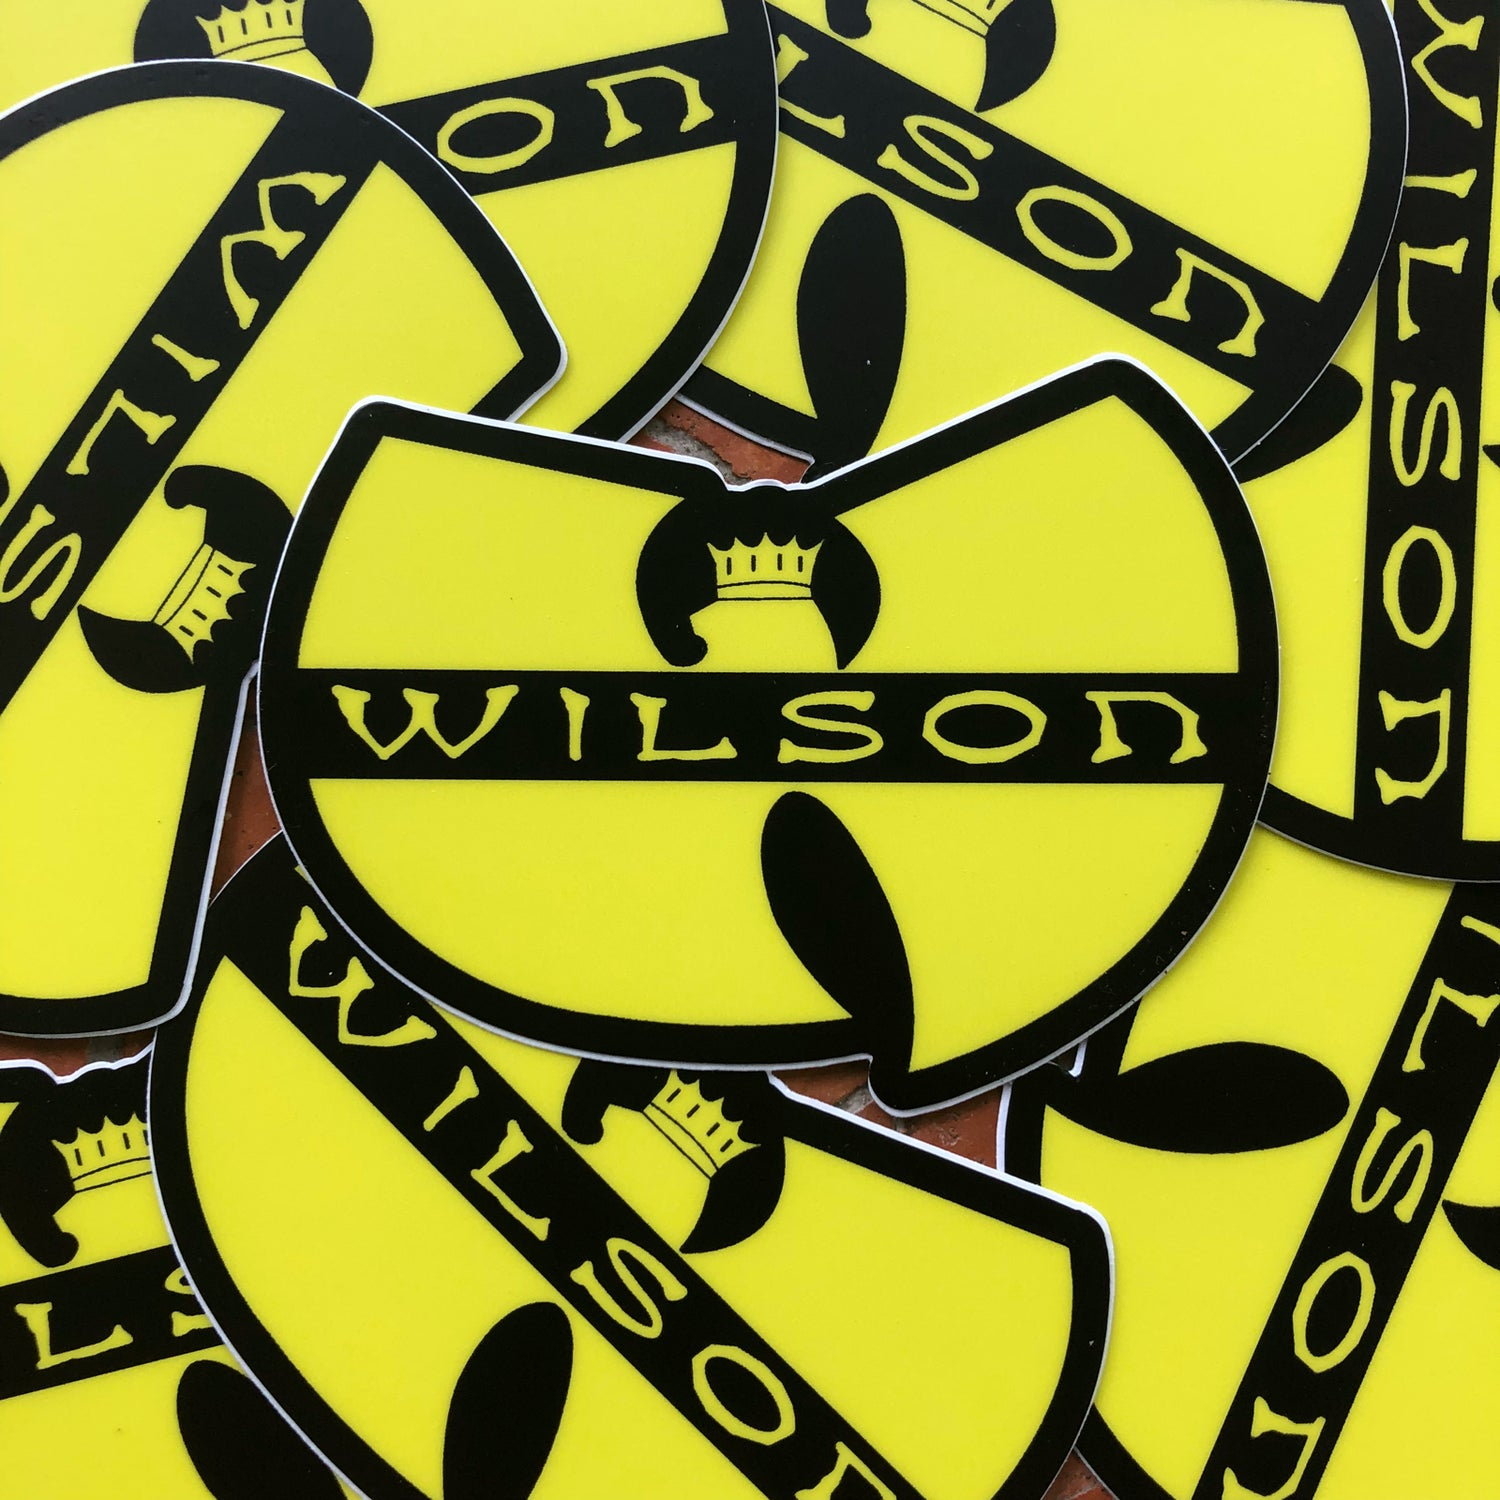 Image of Wilson/Wu-Tang stickers